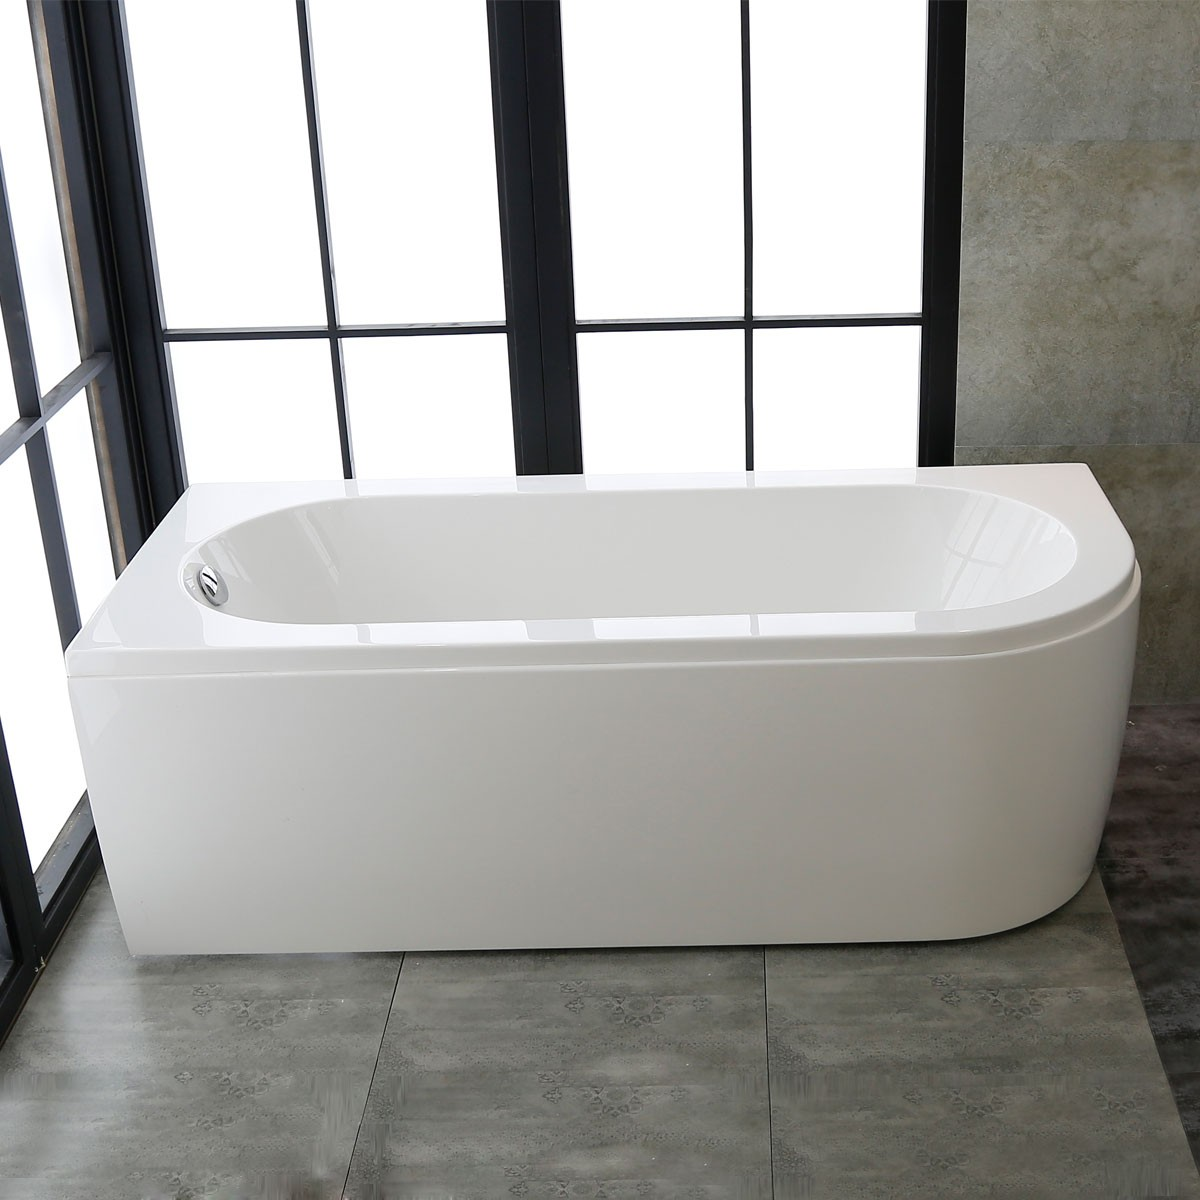 Ordinaire Rectangular Corner Bathtub